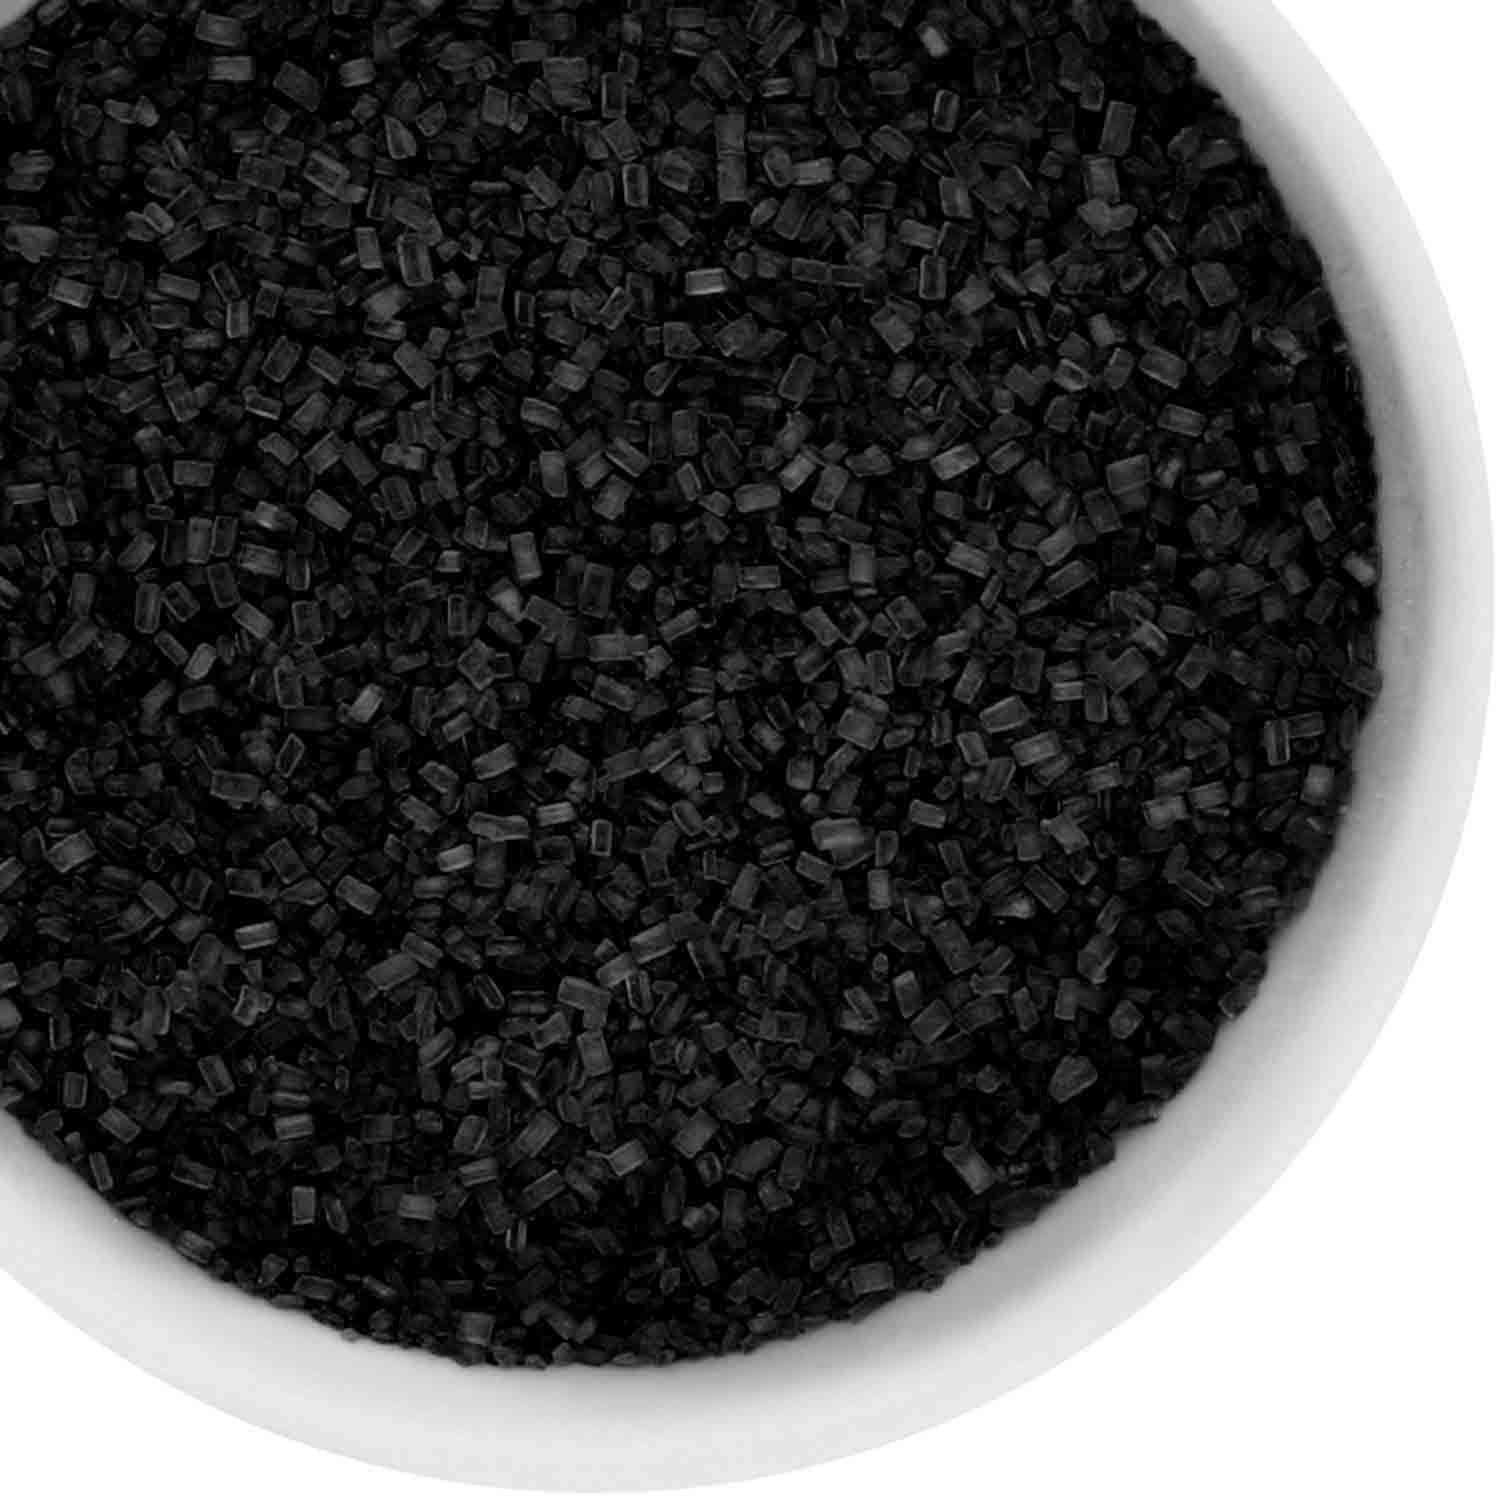 Black Coarse Sugar / Sugar Crystals